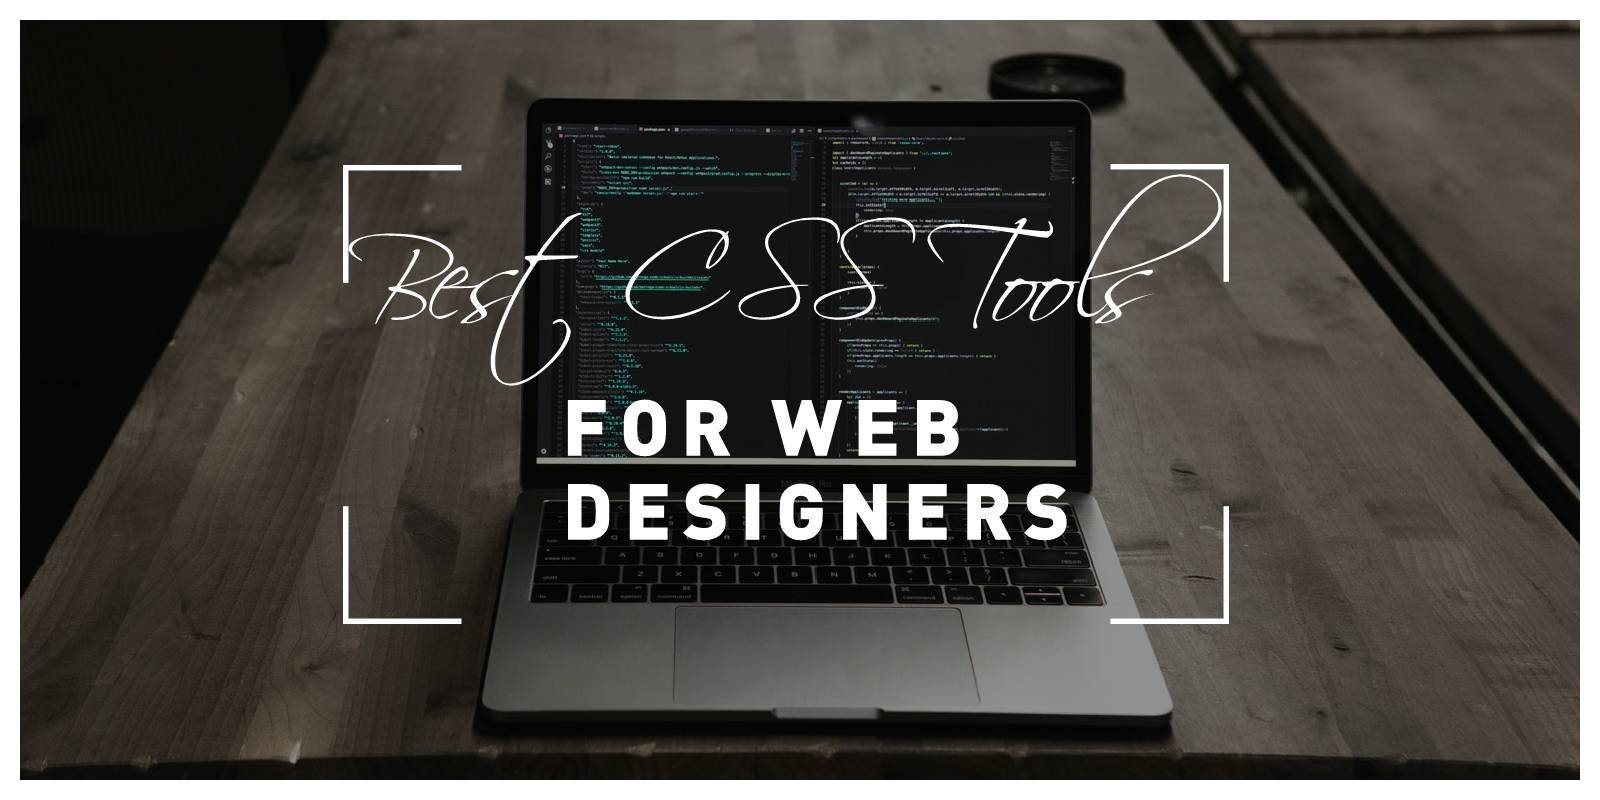 Best CSS Tools for Web Designers: Give Your Website a New and Fresh Design